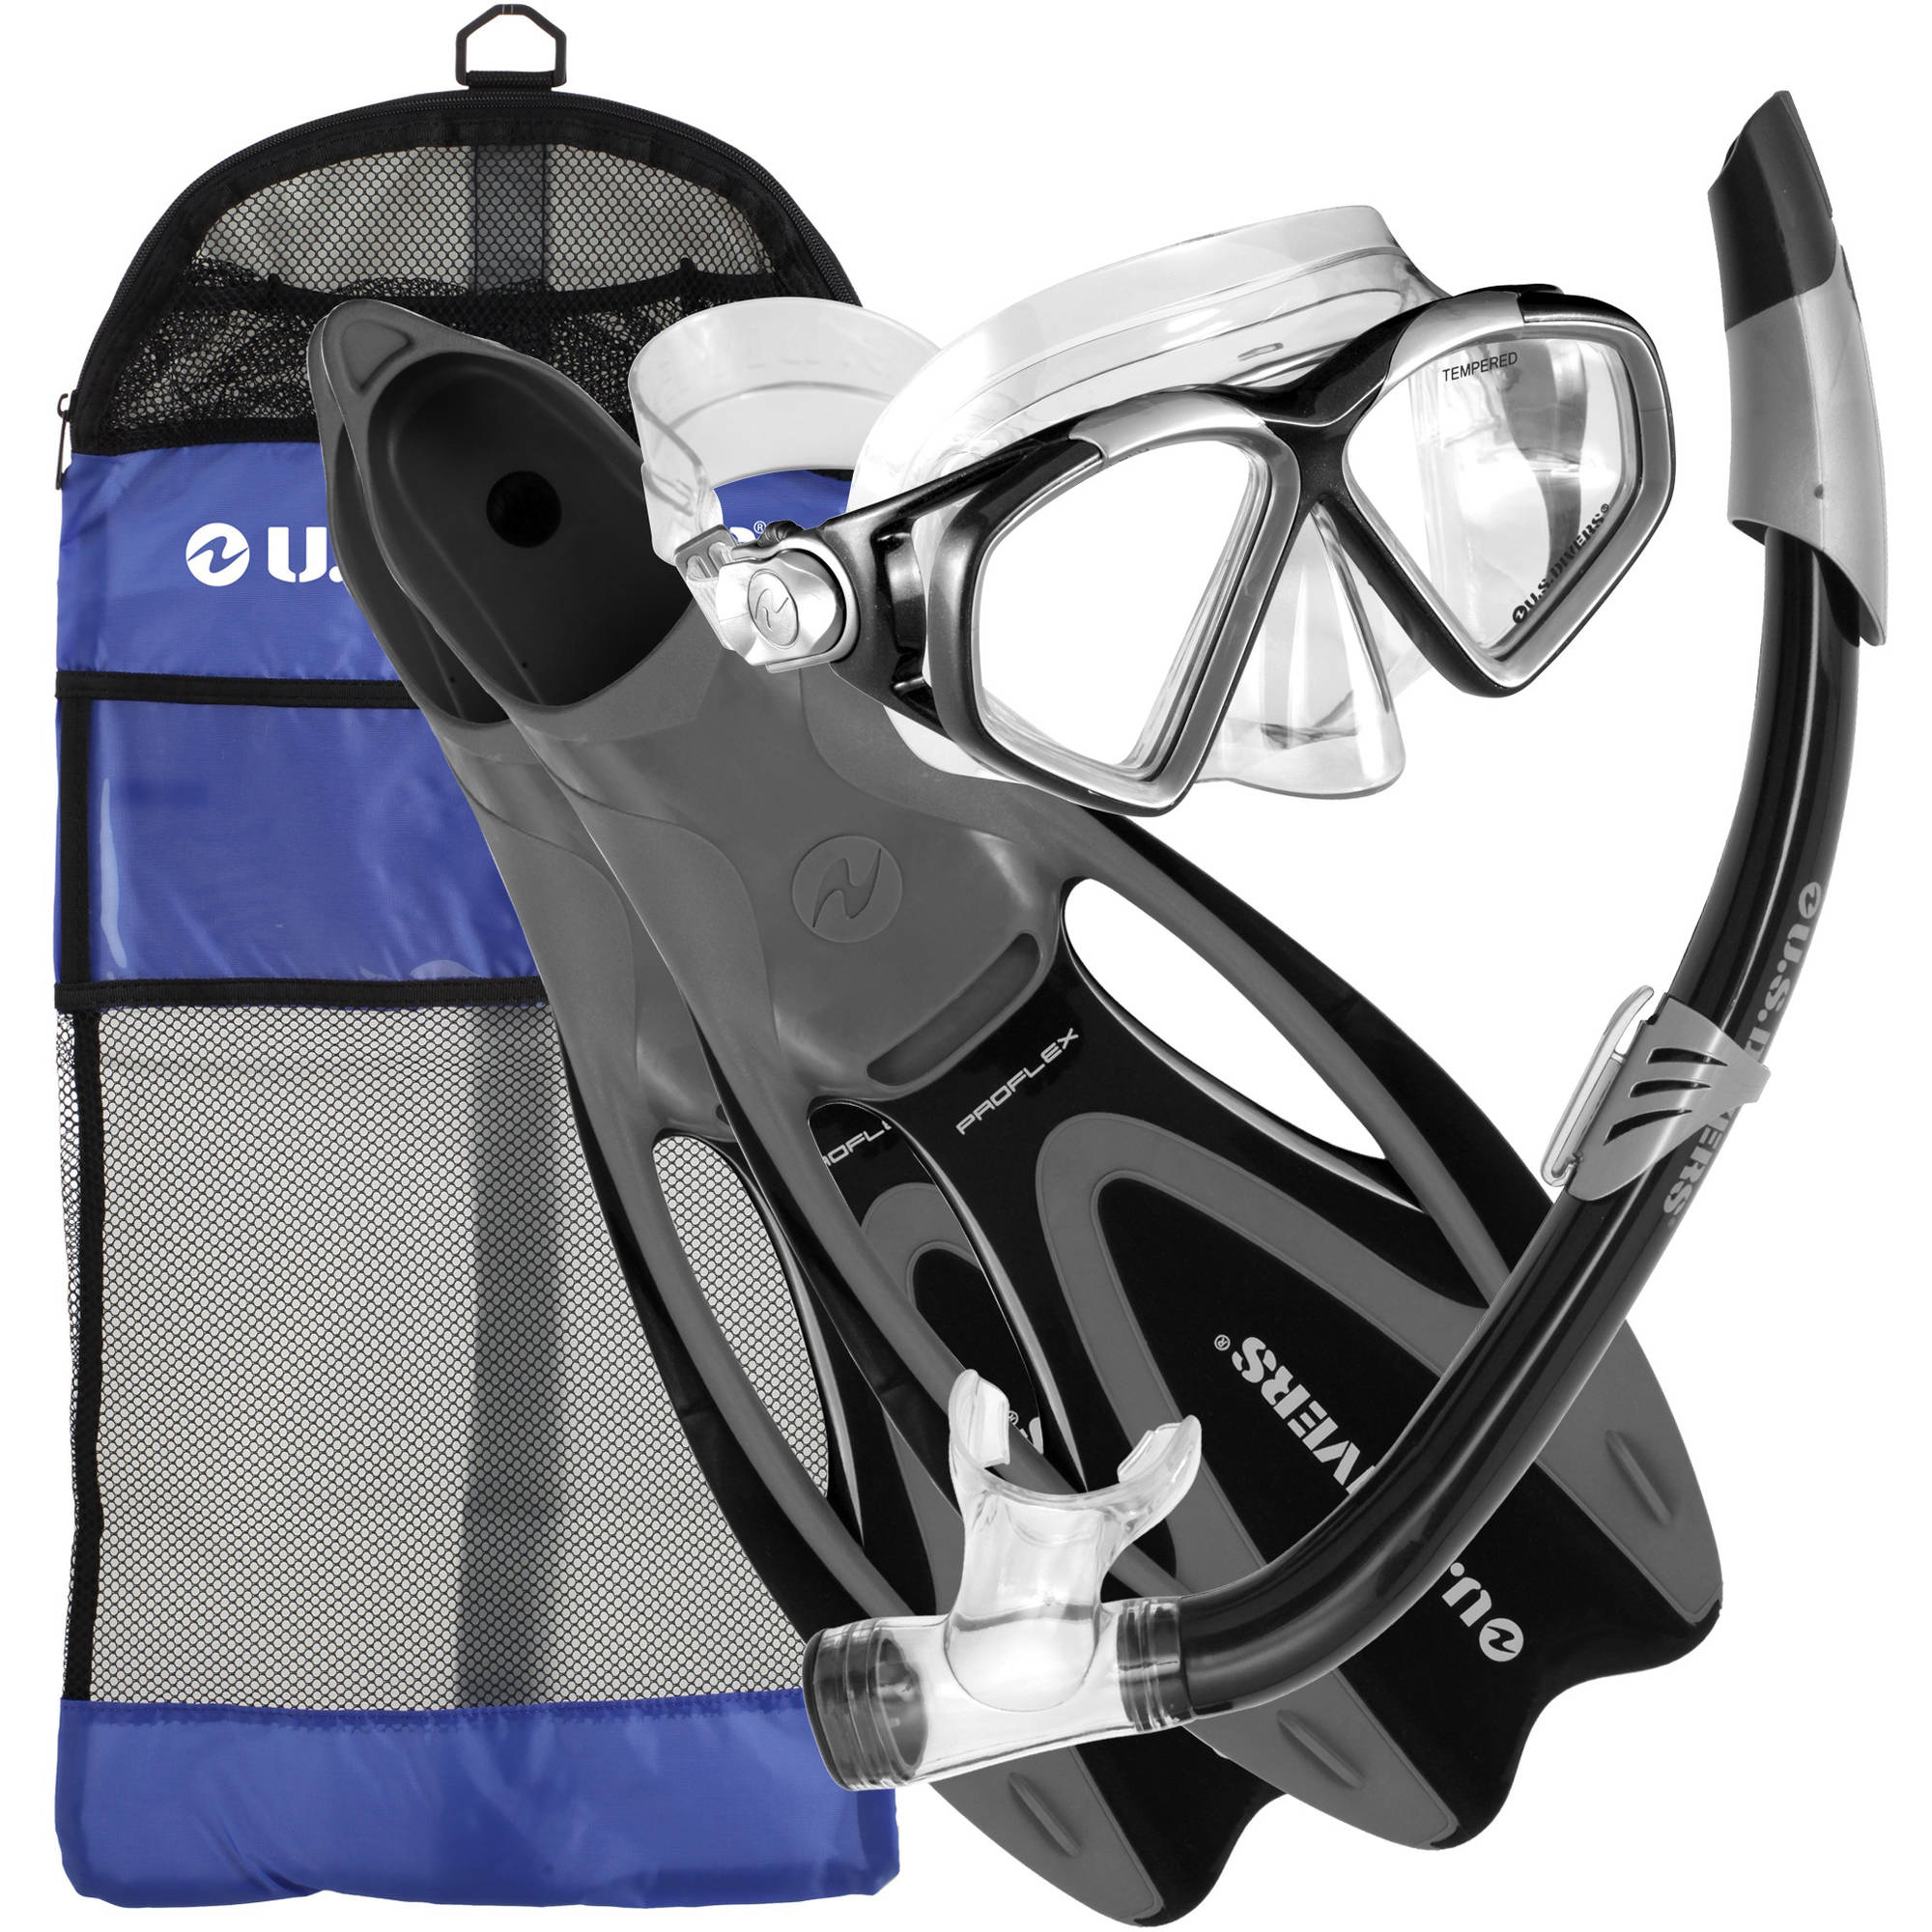 U.S. Divers Cozumel Seabreeze Diving Kit, Black, Medium/Large